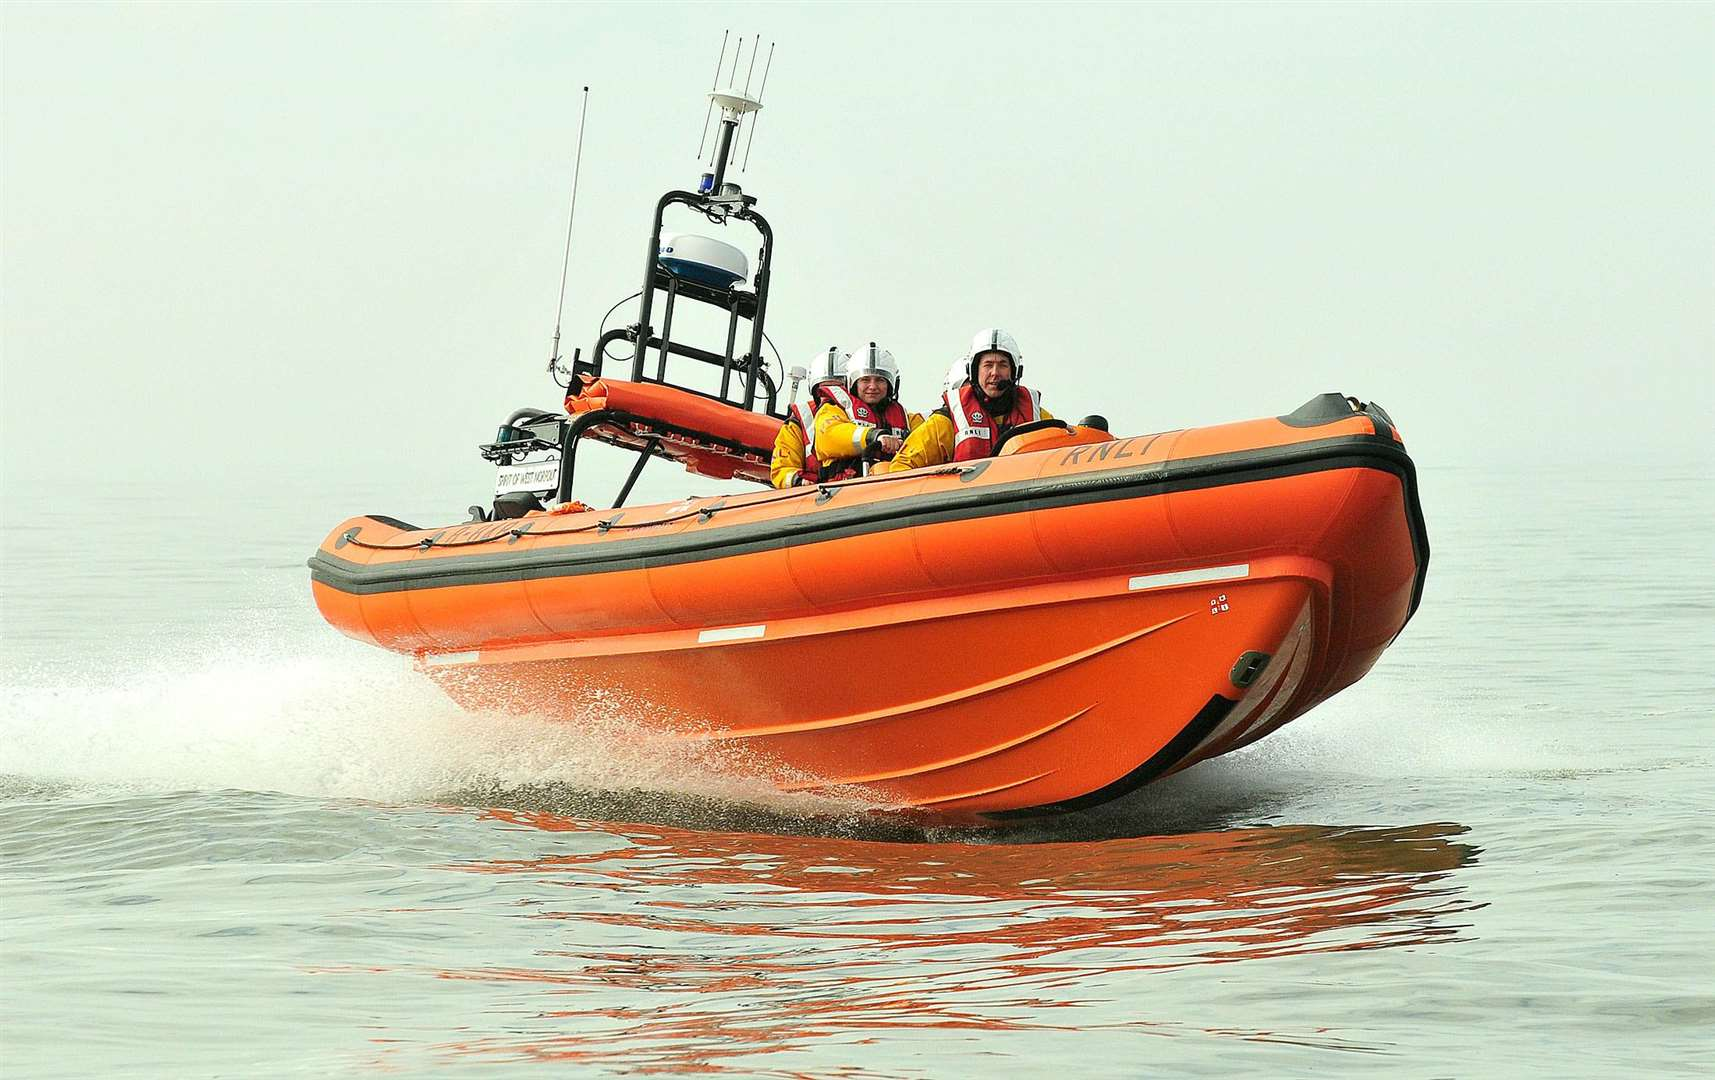 Hunstanton's lifeboat has been called out to rescue three girls off the West Norfolk coast